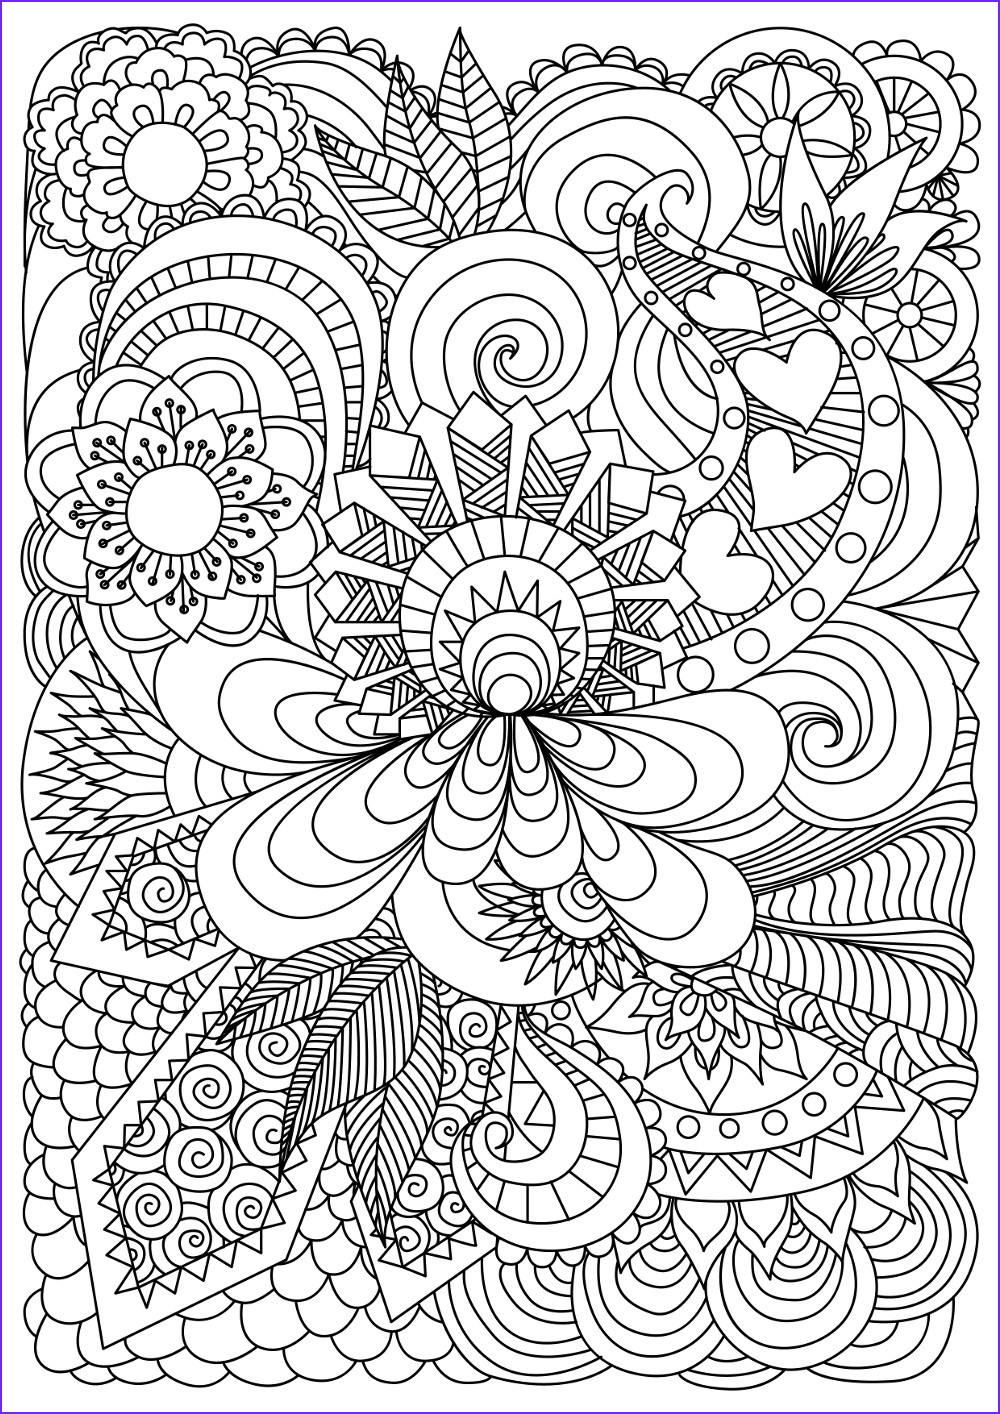 Coloring Books for Adults Awesome Images 37 Best Adults Coloring Pages Updated 2018